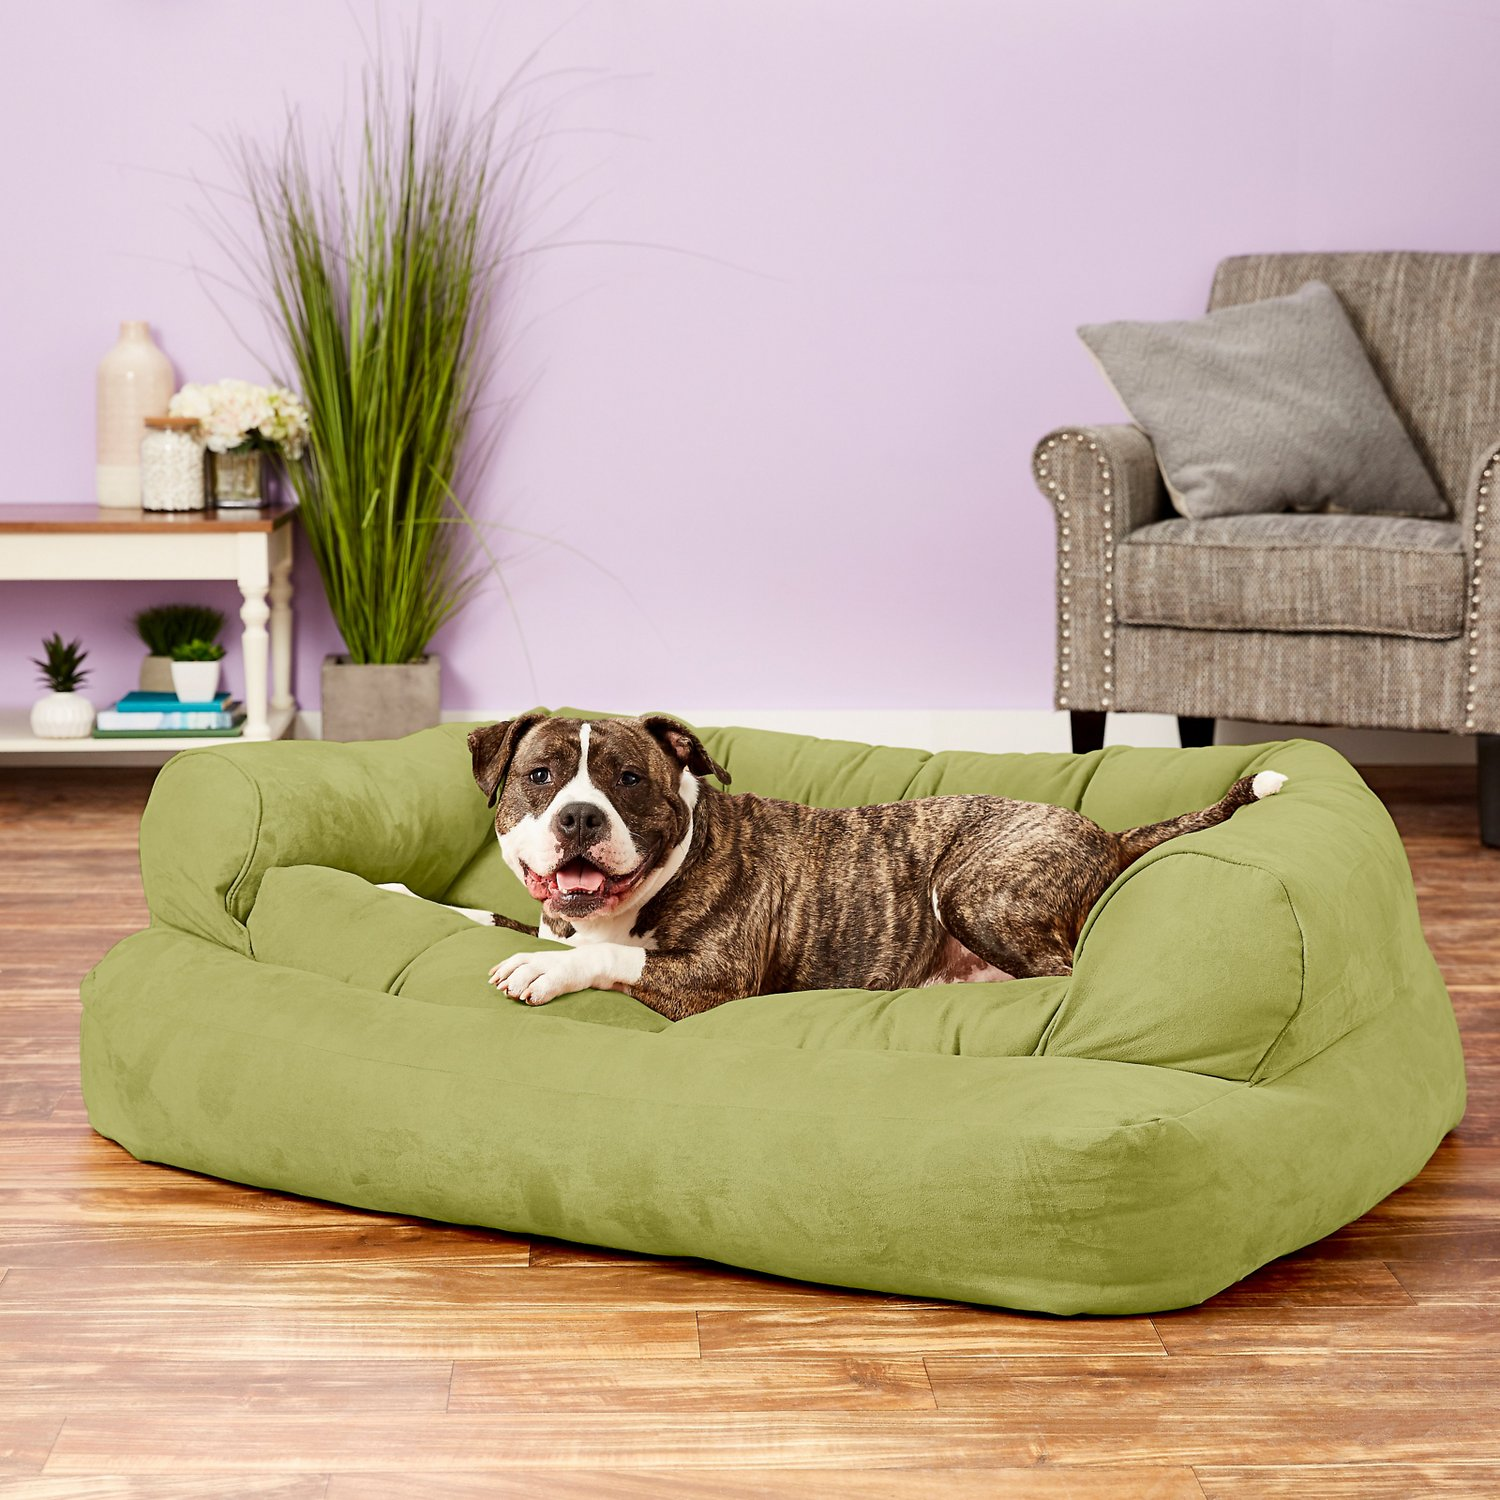 large overstuffed sofas genuine leather sofa snoozer pet products luxury dog and cat